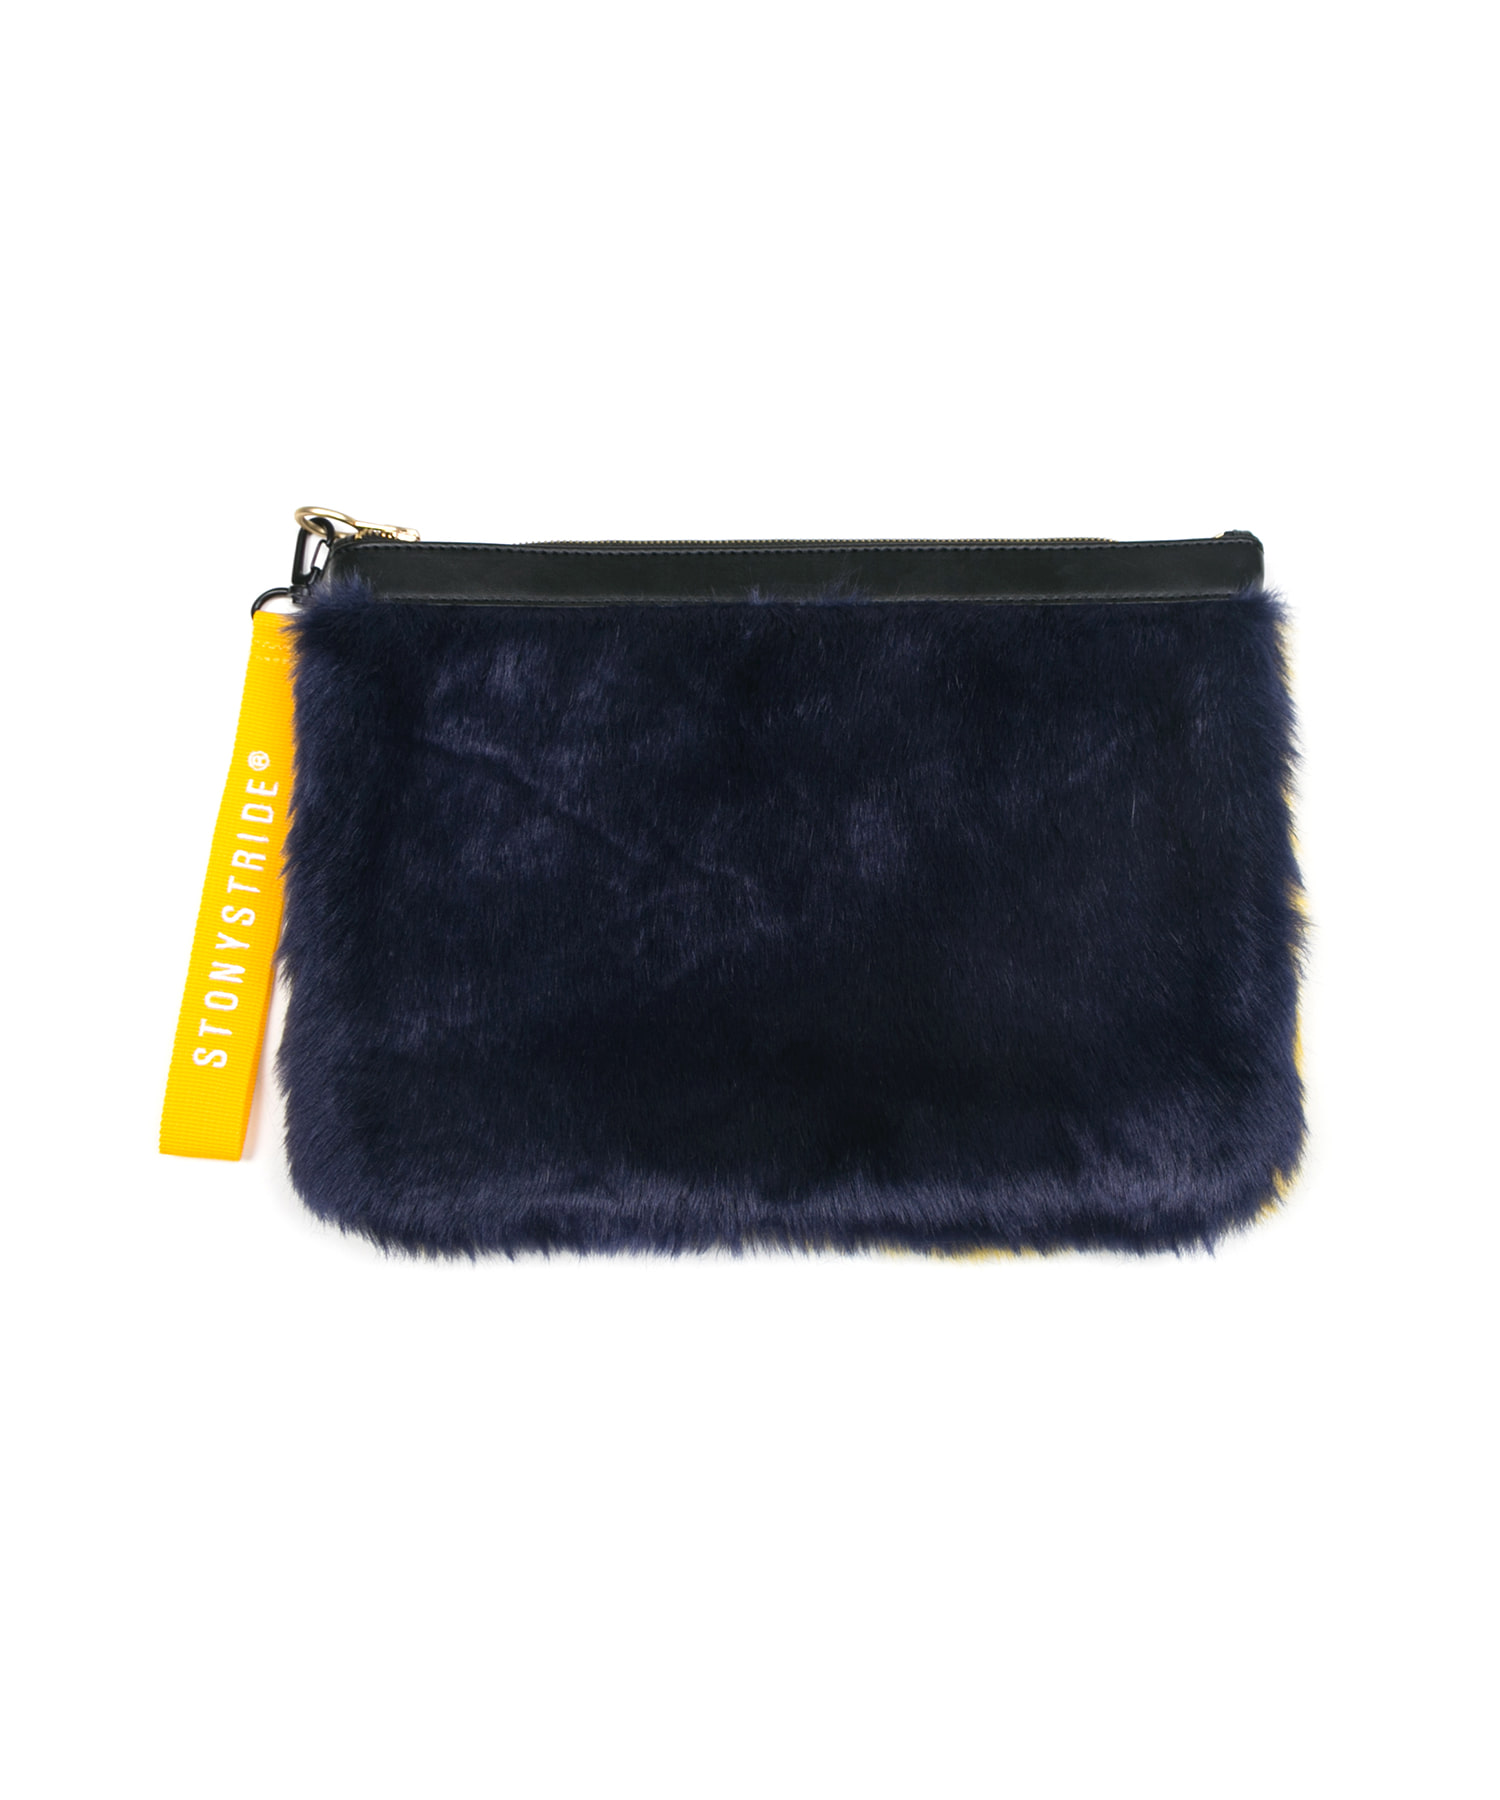 Colourful two-tone fur clutchbag - yellow/navy